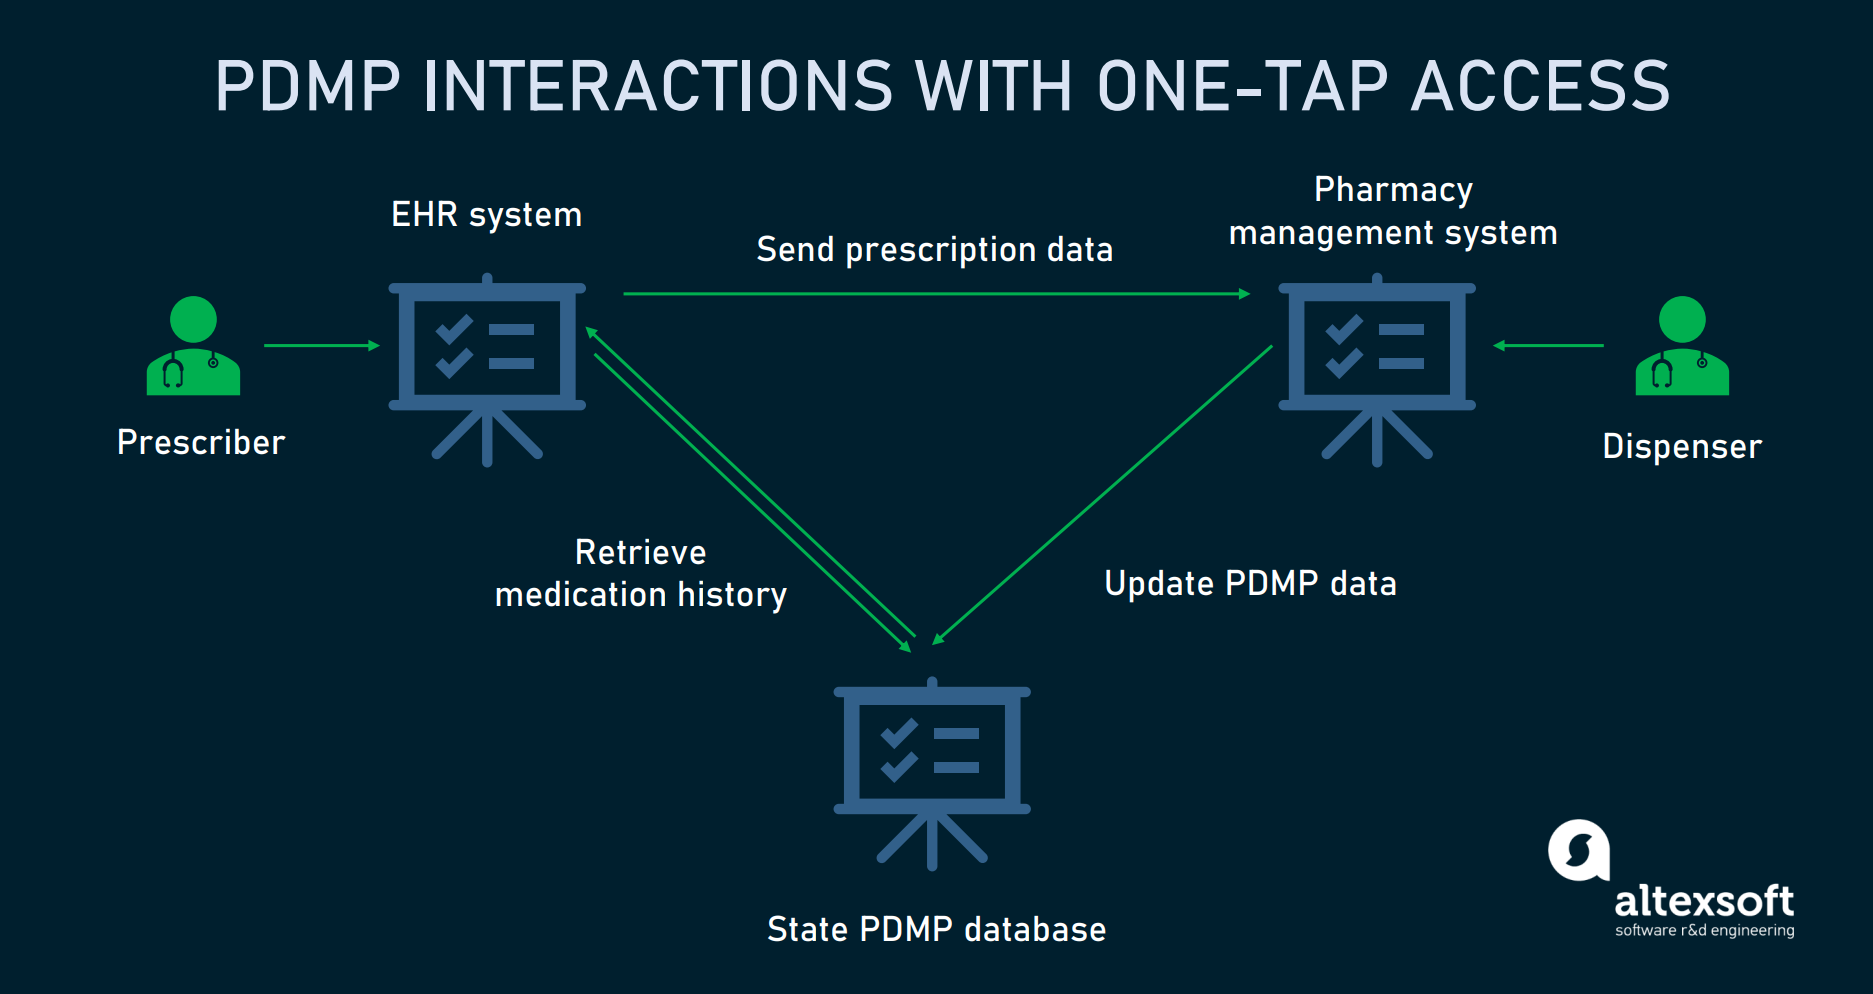 PDMP-integrated environment